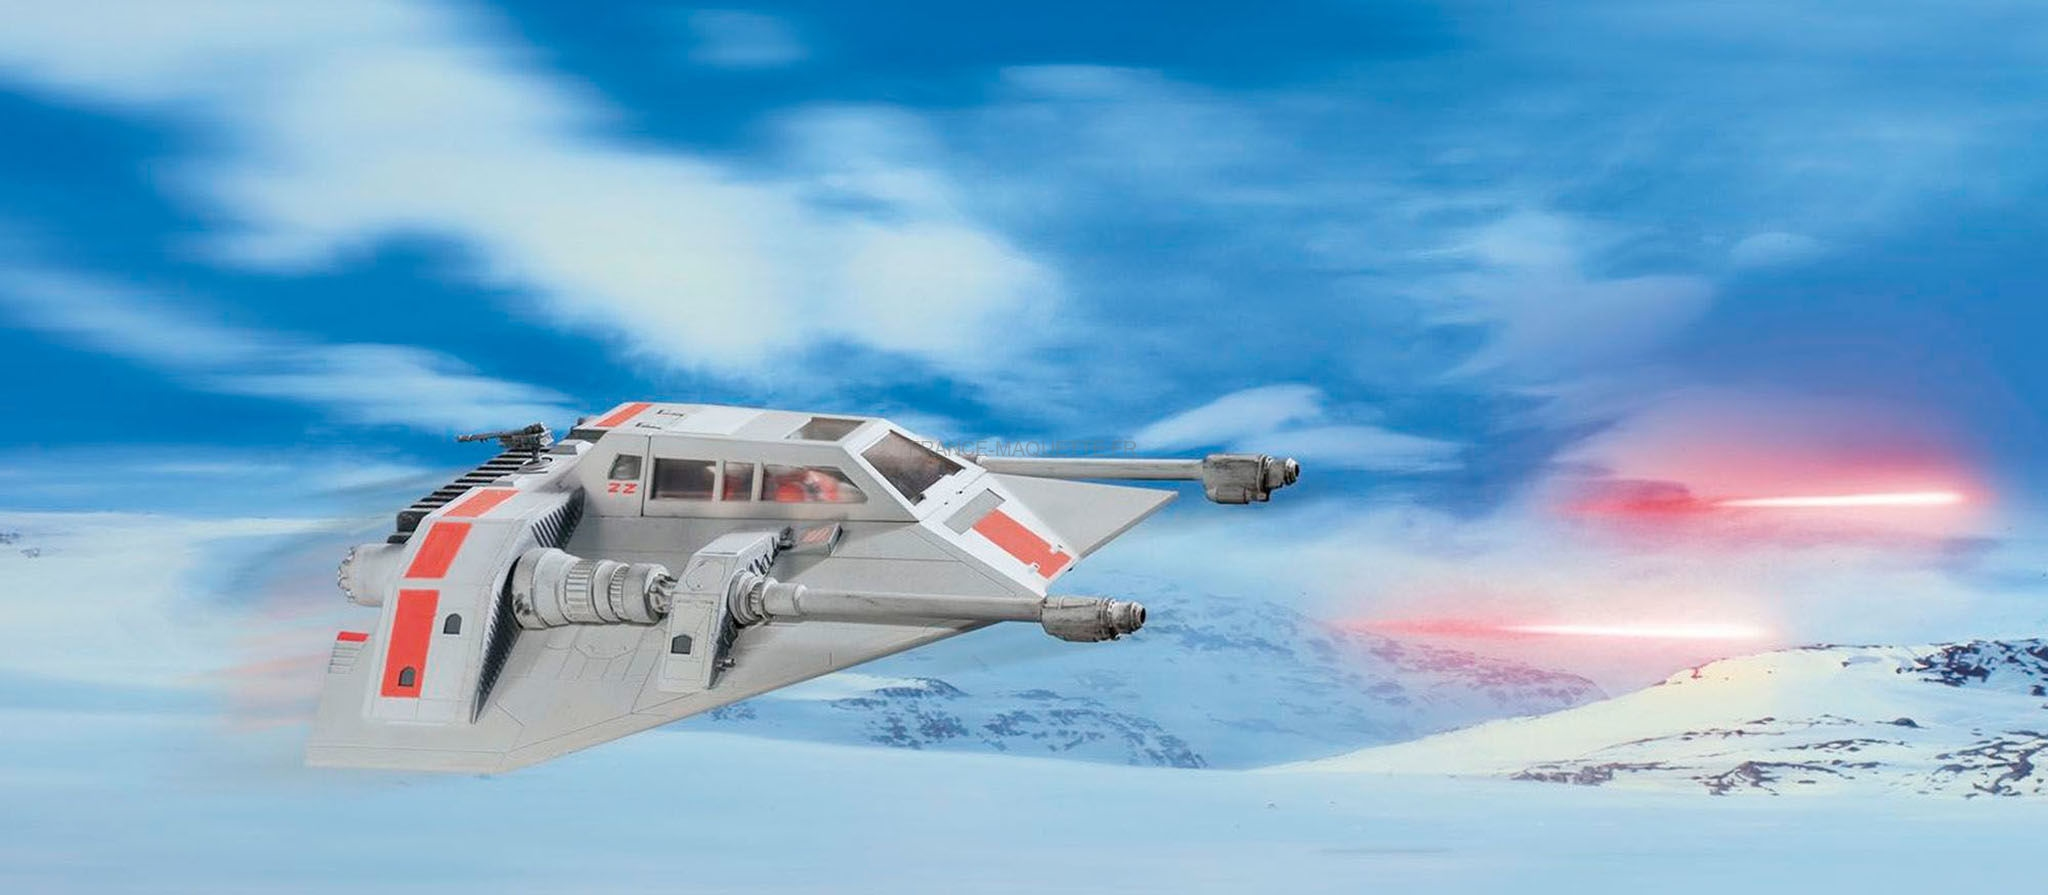 "RE5679 Snowspeeder-40th Anniversary""The Empire Strikes Back'"